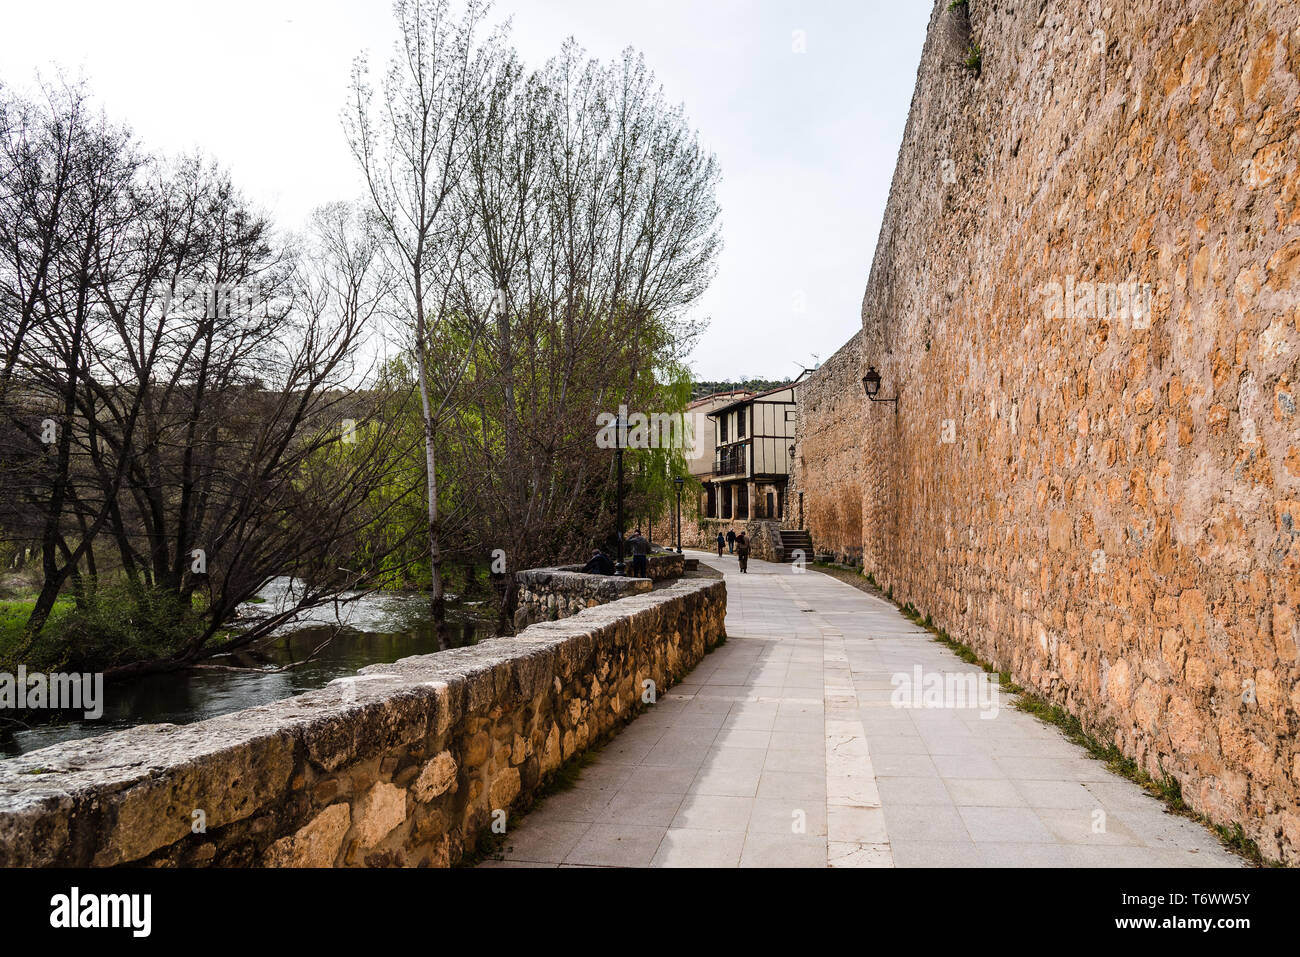 Scenic view of Arlanza River in the old medieval town of Covarrubias in Burgos, Castile and Leon - Stock Image